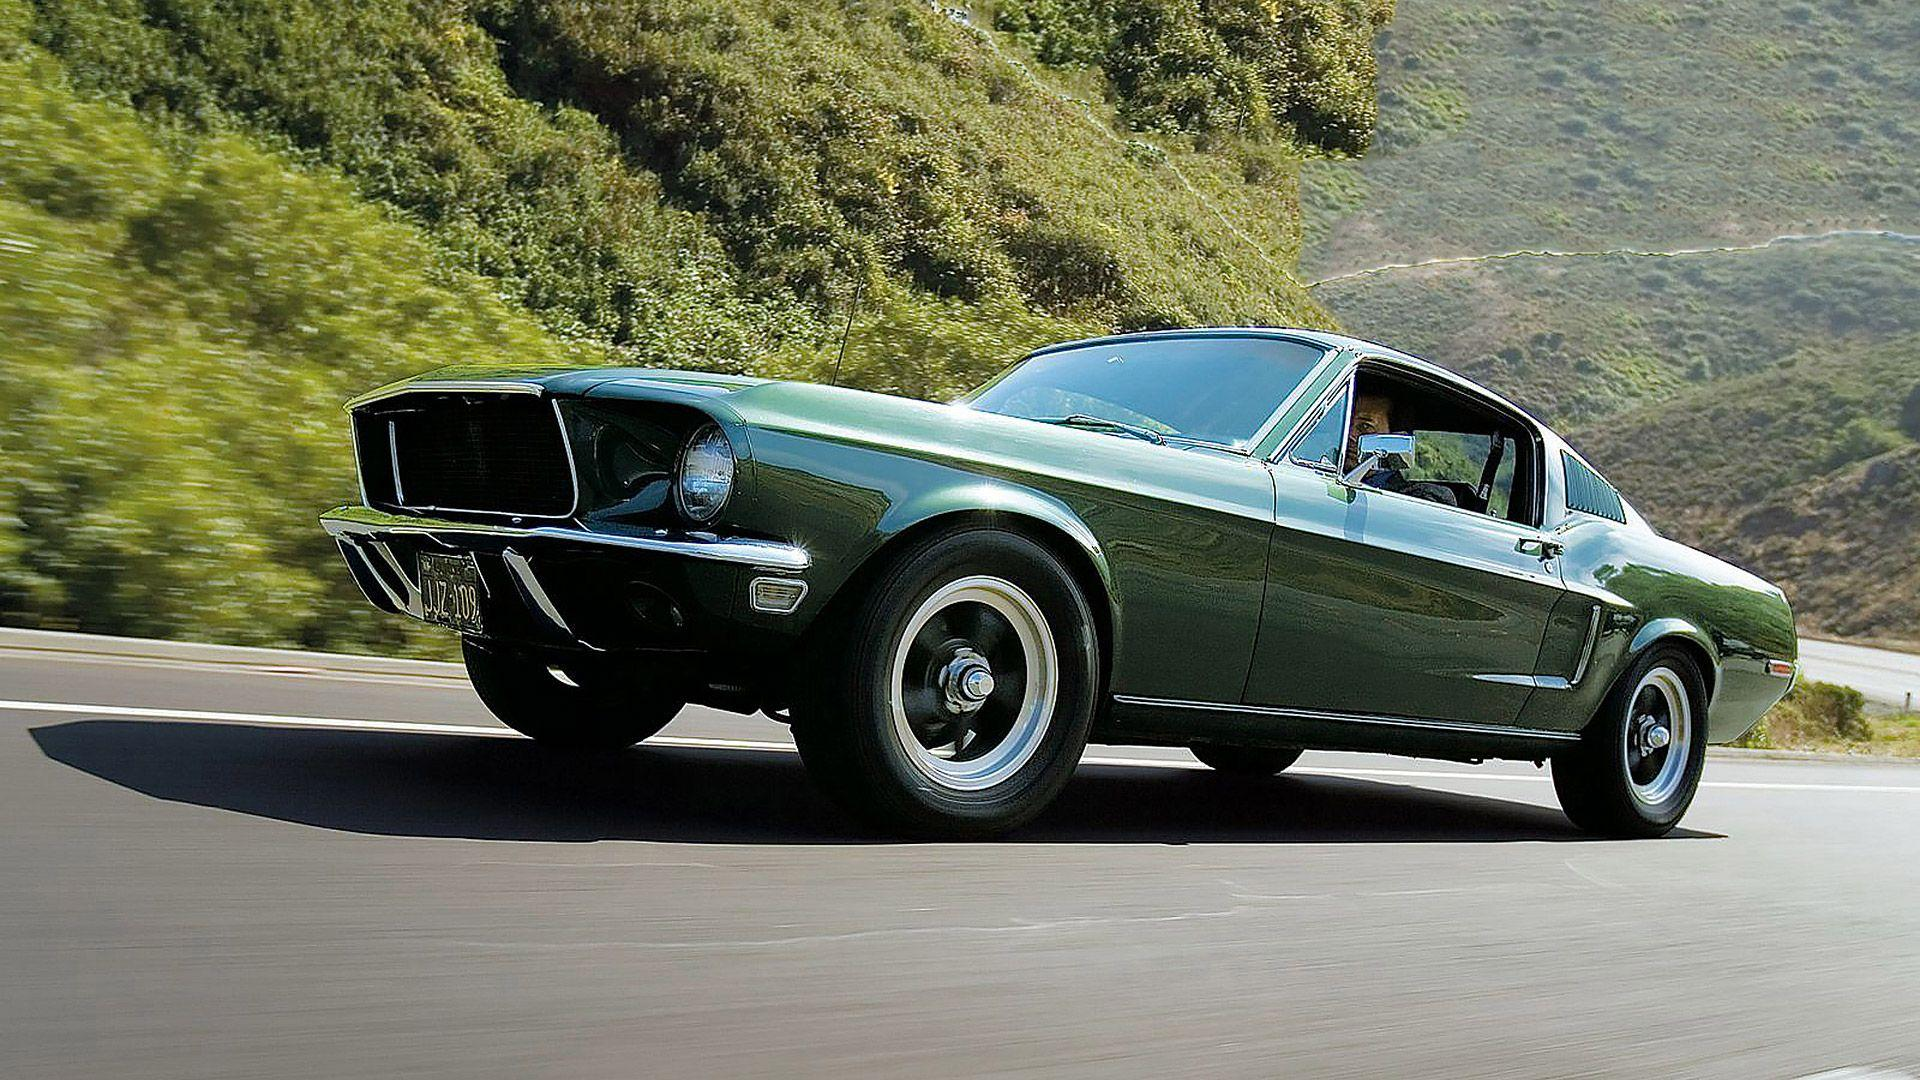 1968 Ford Mustang 390 Gt 2 2 Fastback >> 1969 Shelby Mustang GT500 Fastback Wallpapers - Wallpaper Cave